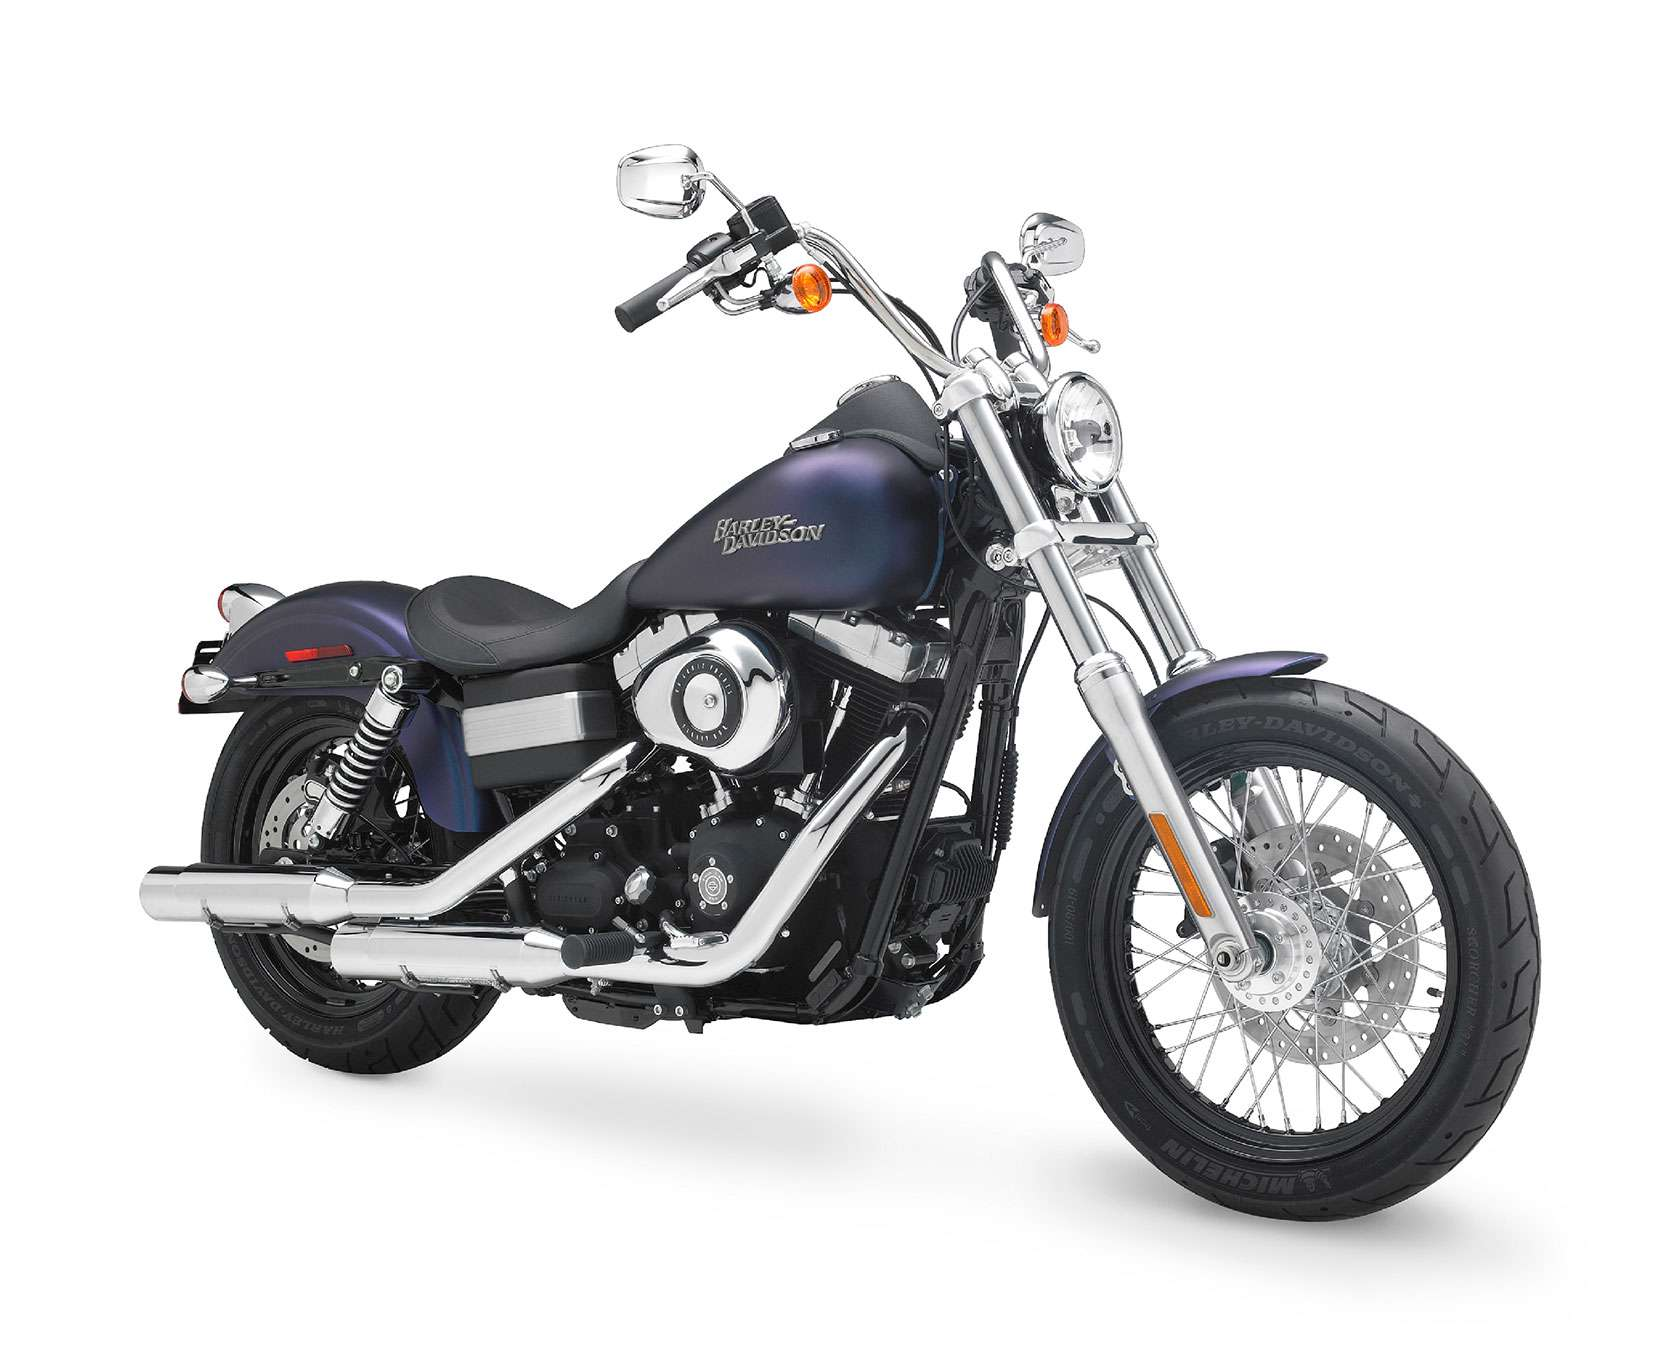 2010 Harley Davidson Motorcycles Buyer's Guide - Pictures of Every